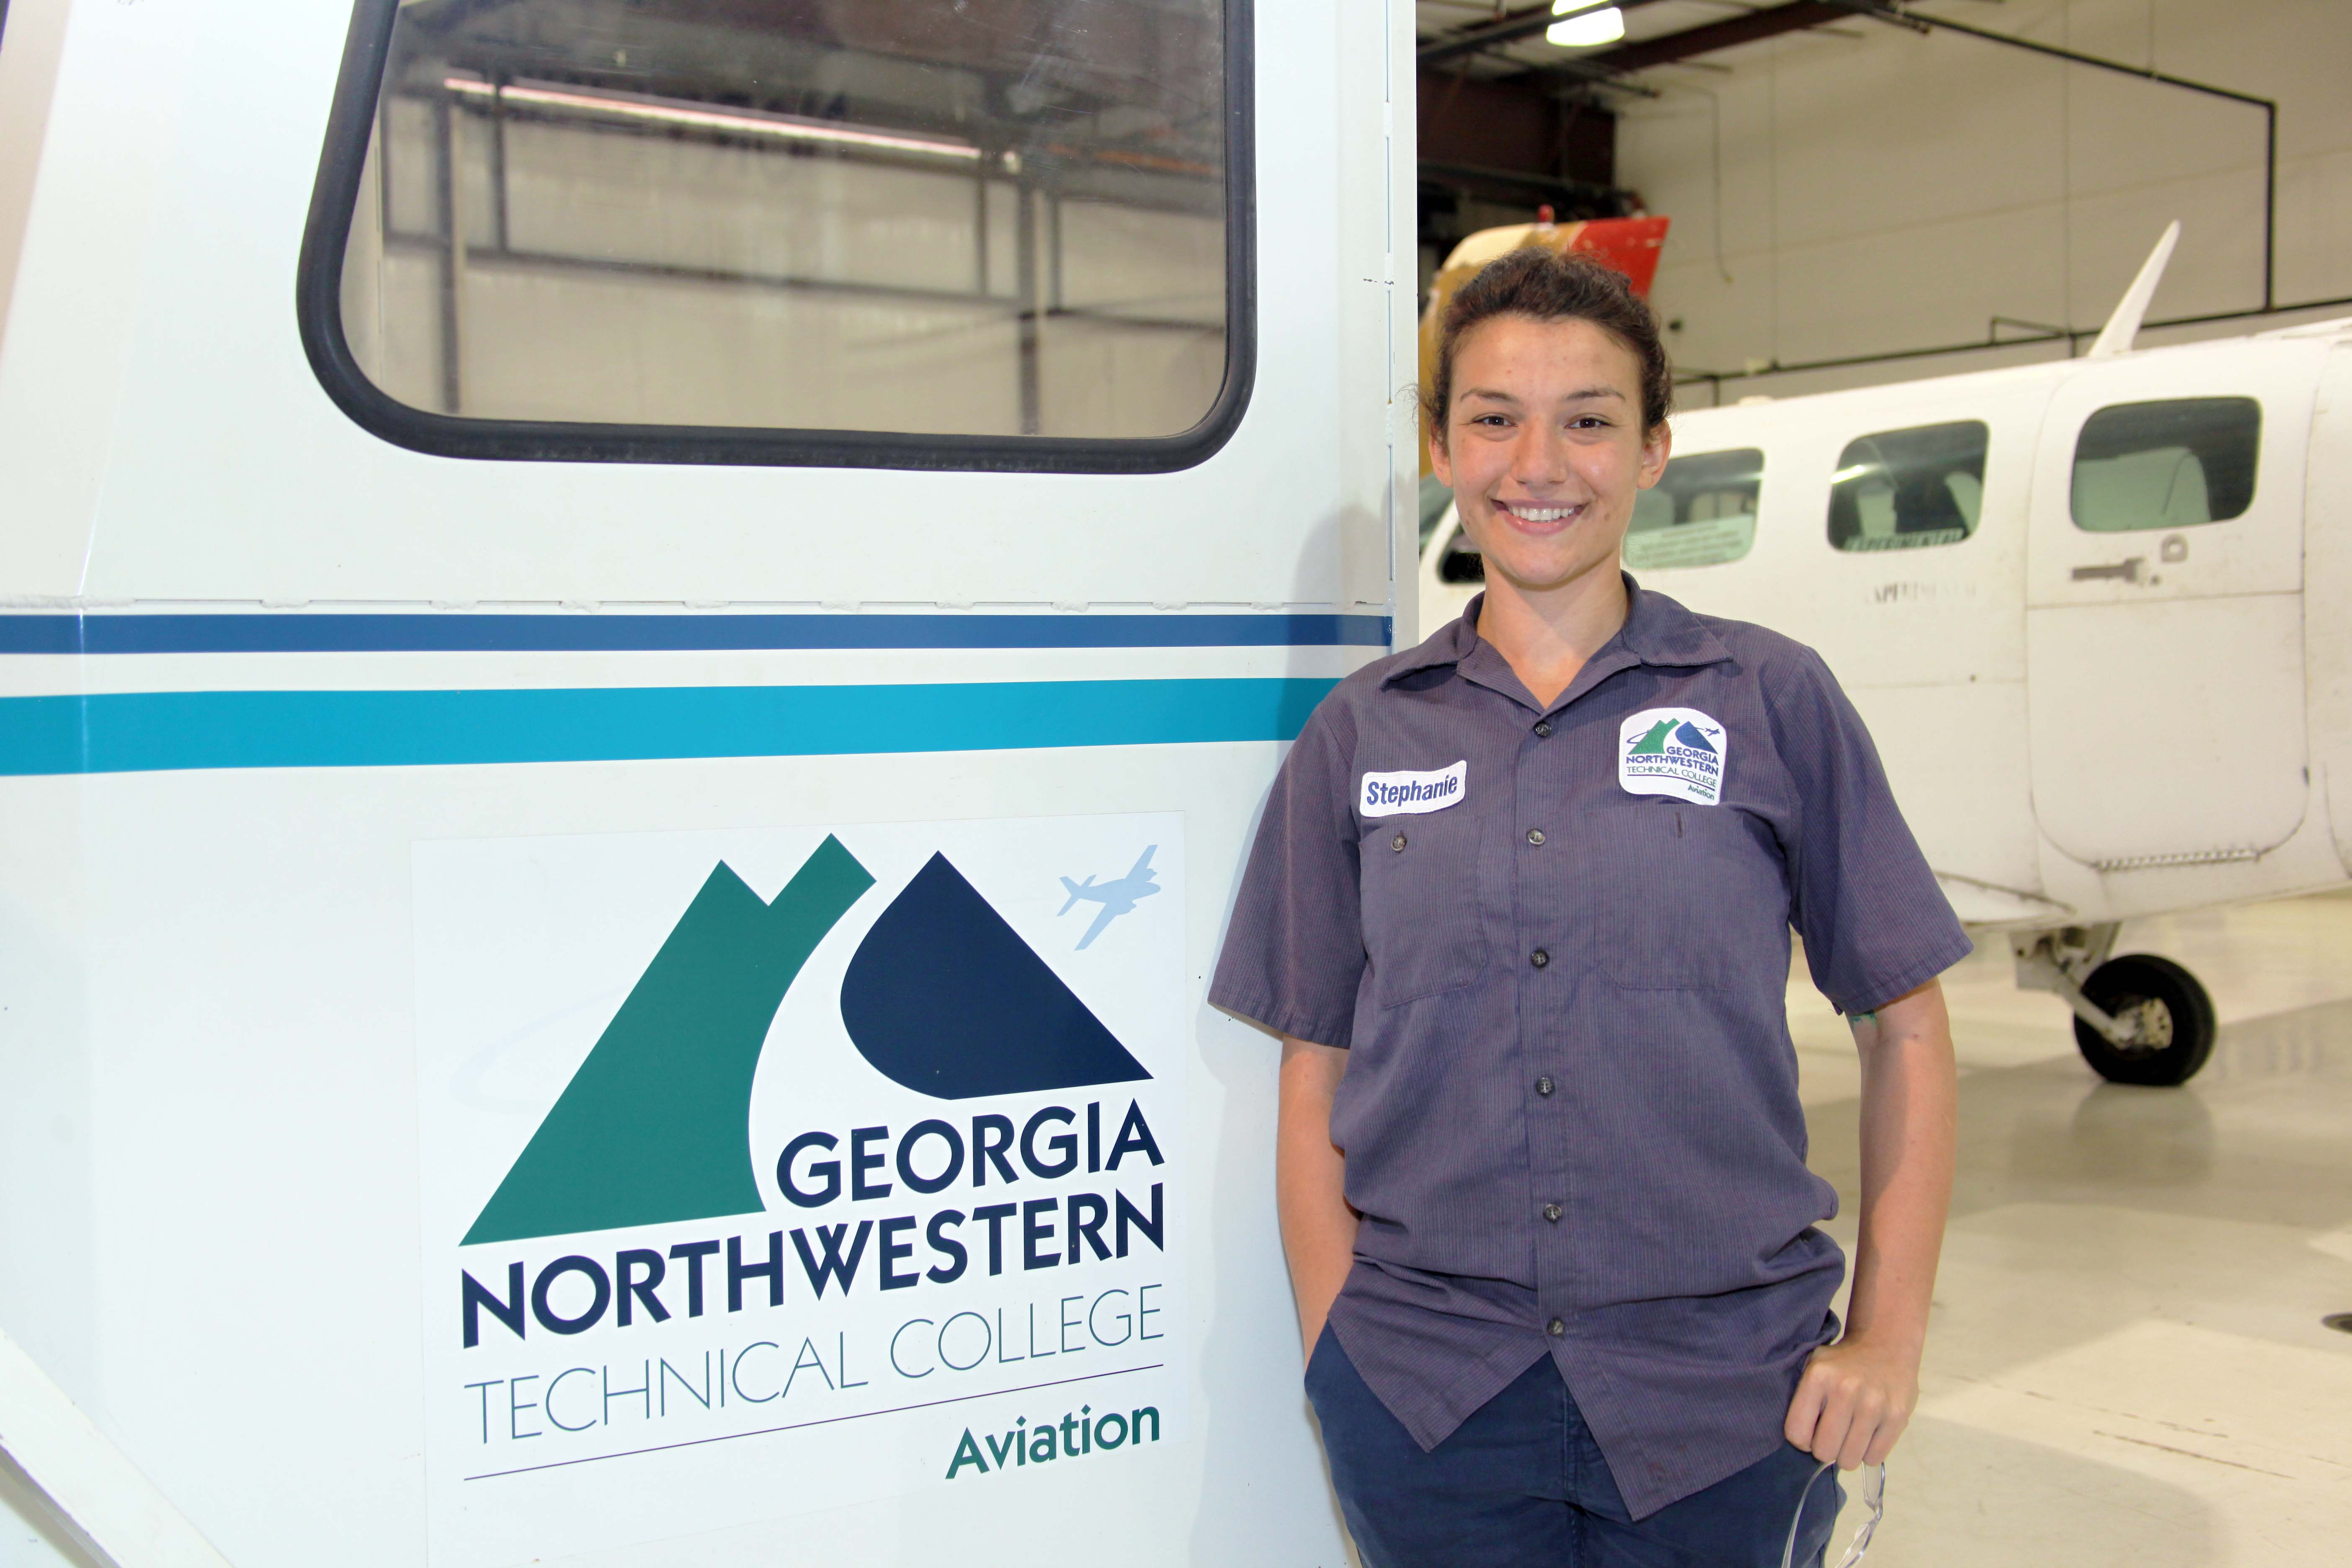 Aviation Maintenance Technology major Stephanie Tarbous received the $5,000 Delta Air Lines Aircraft Maintenance Technology Scholarship to help with her education at GNTC.